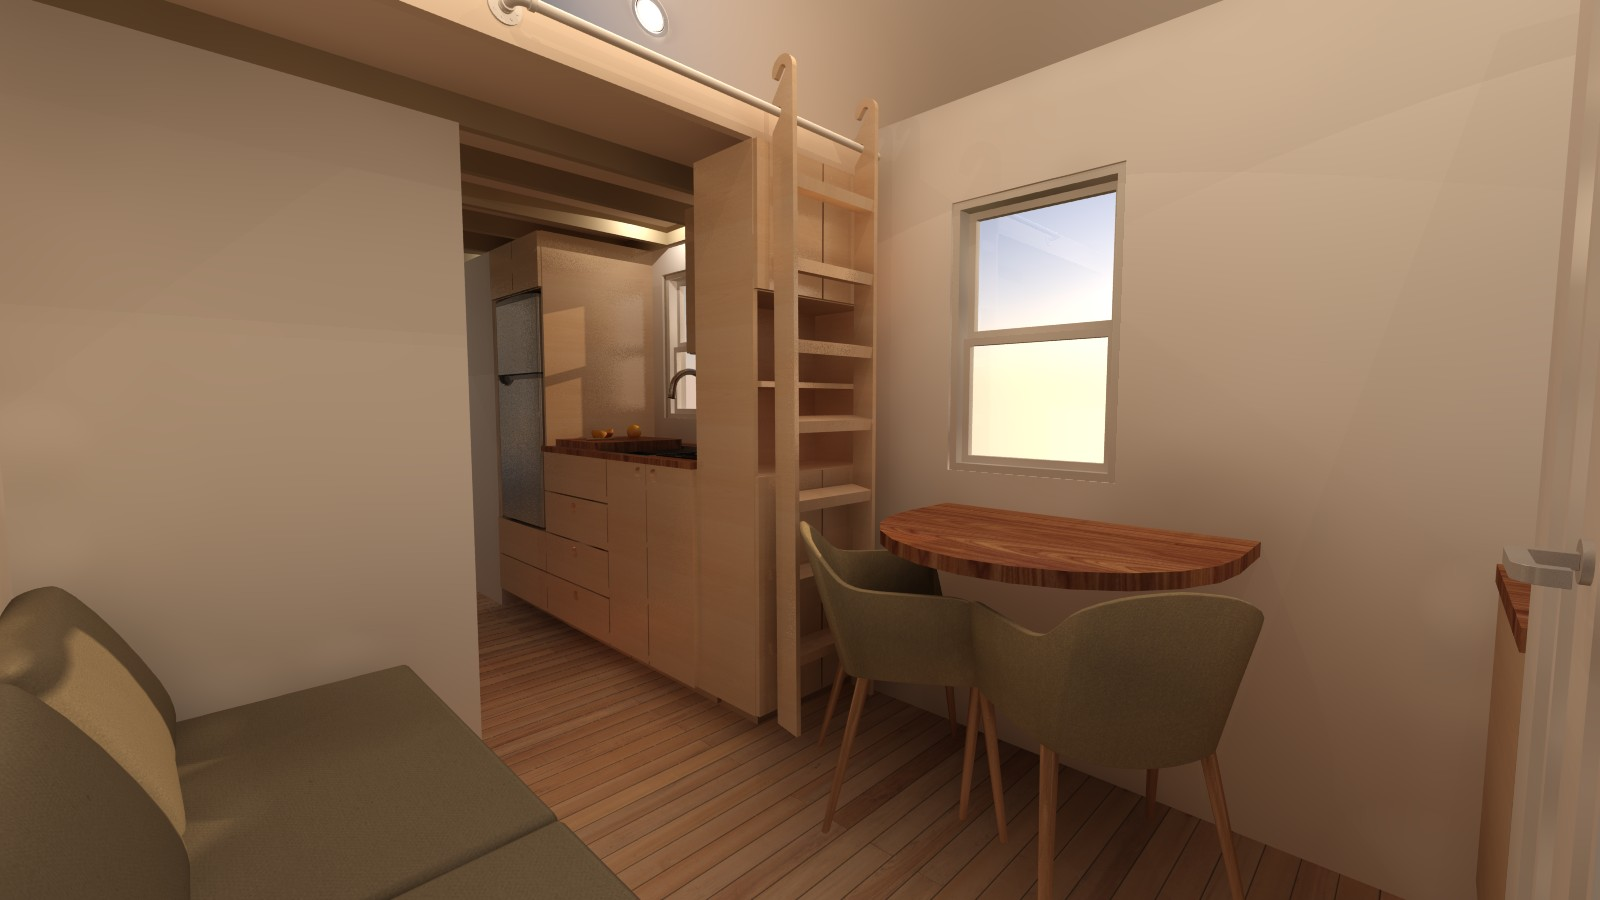 little river 24 tiny house interior living dining - Tiny House Interior Bathroom